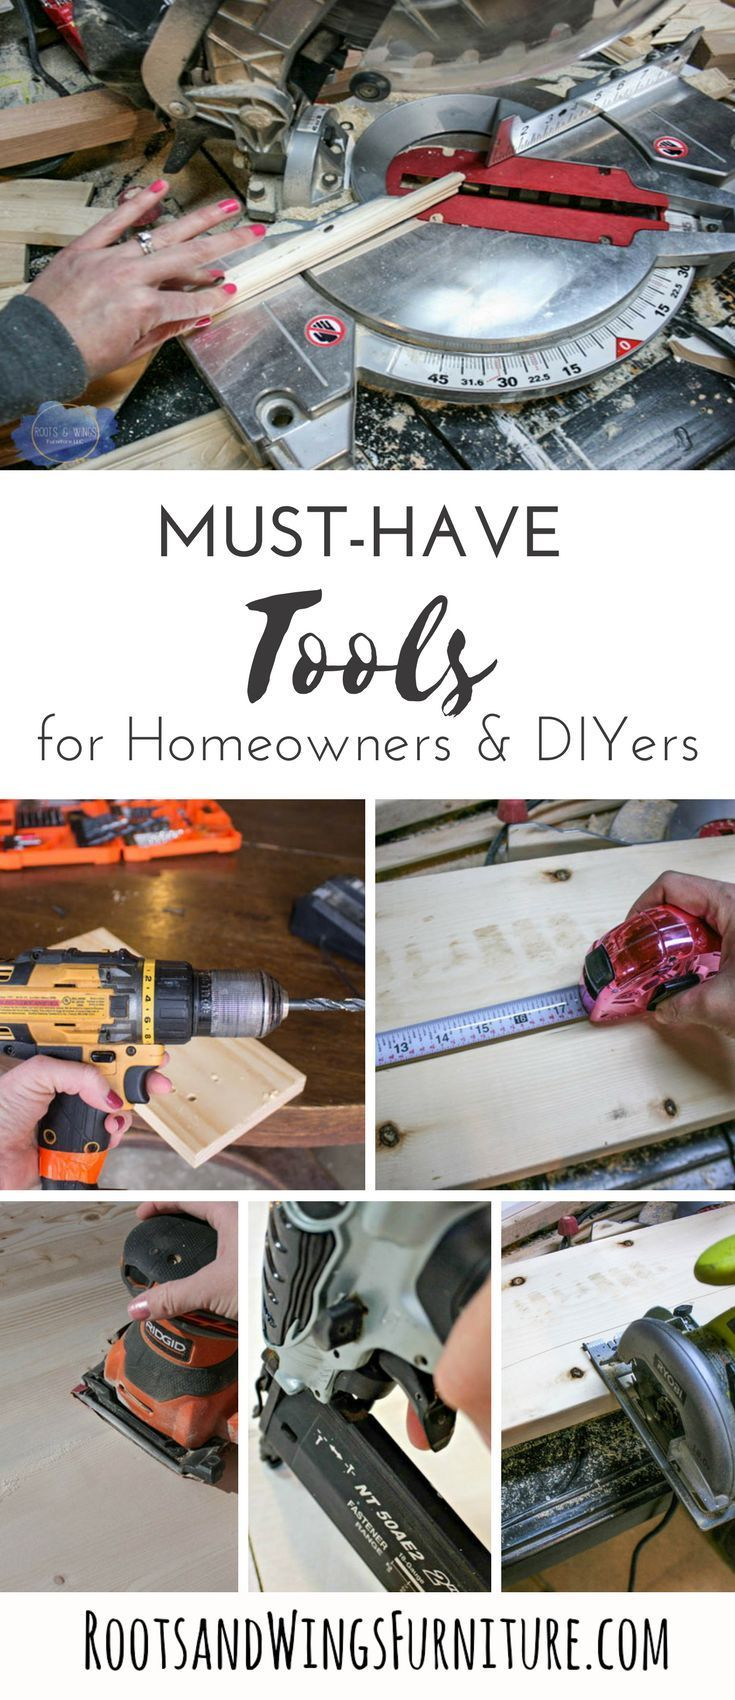 must-have tools for homeowners & diyers (and a few tools you